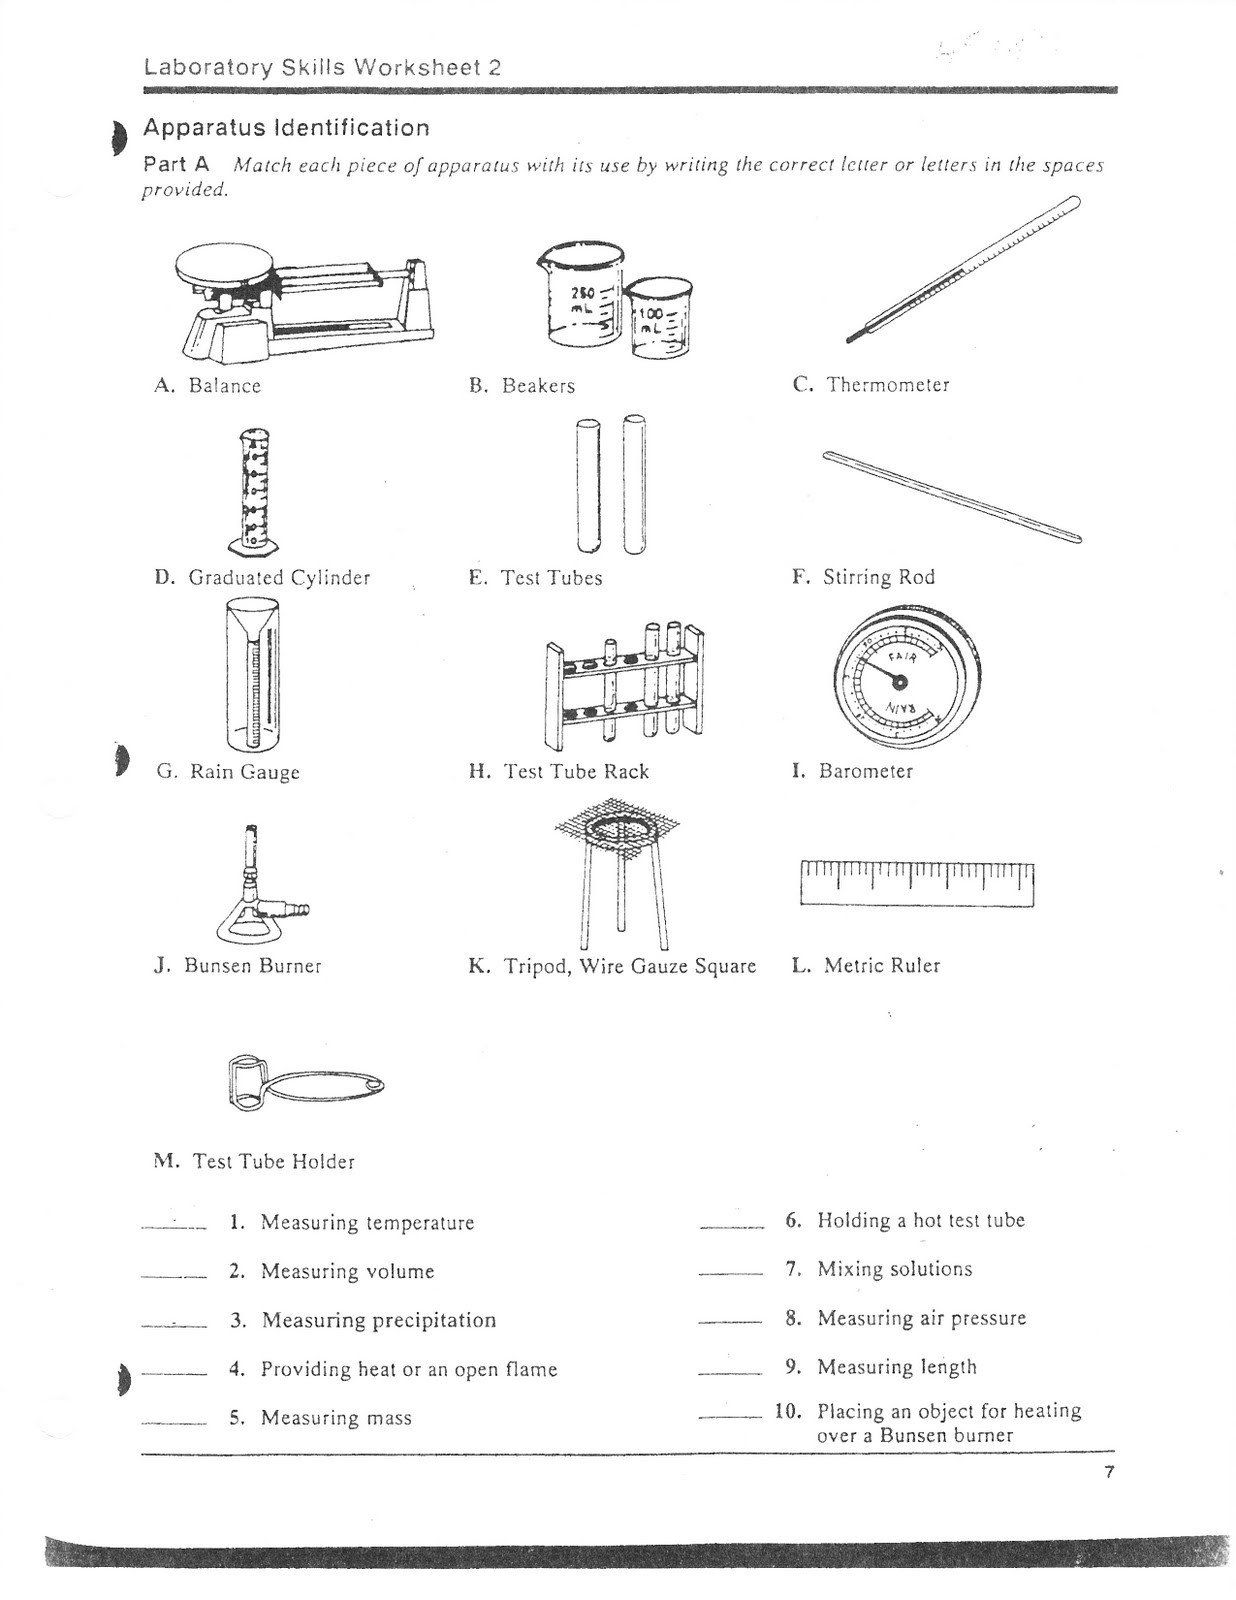 Macromolecules Chart Worksheet Answers Macromolecule Table Worksheet In 2020 Chemistry Worksheets Chemistry Lab Equipment Nouns And Verbs Worksheets